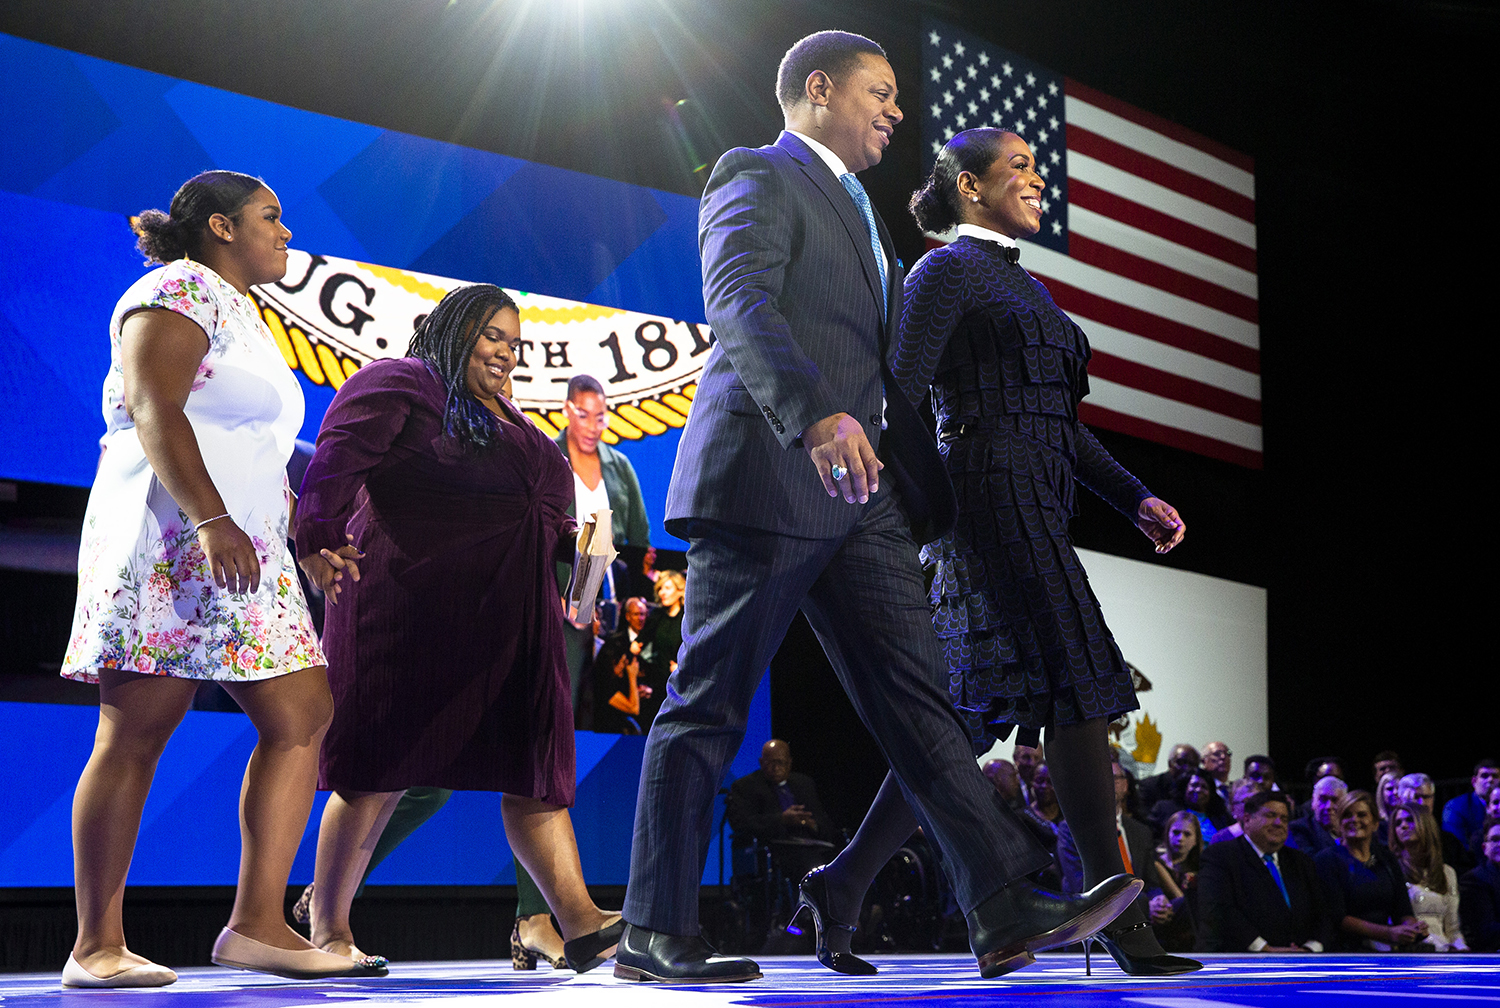 Lt. Gov.-elect Julianna Stratton, accompanied by her fiancé, Bryan Echols and her daughters, Ryan, Tyler and Cassidy, not seen, walks onto the stage to take the oath of office during the Illinois Inaugural Ceremony Monday, Jan. 14, 2019 a the Bank of Springfield Center in Springfield, Ill. [Rich Saal/The State Journal-Register]